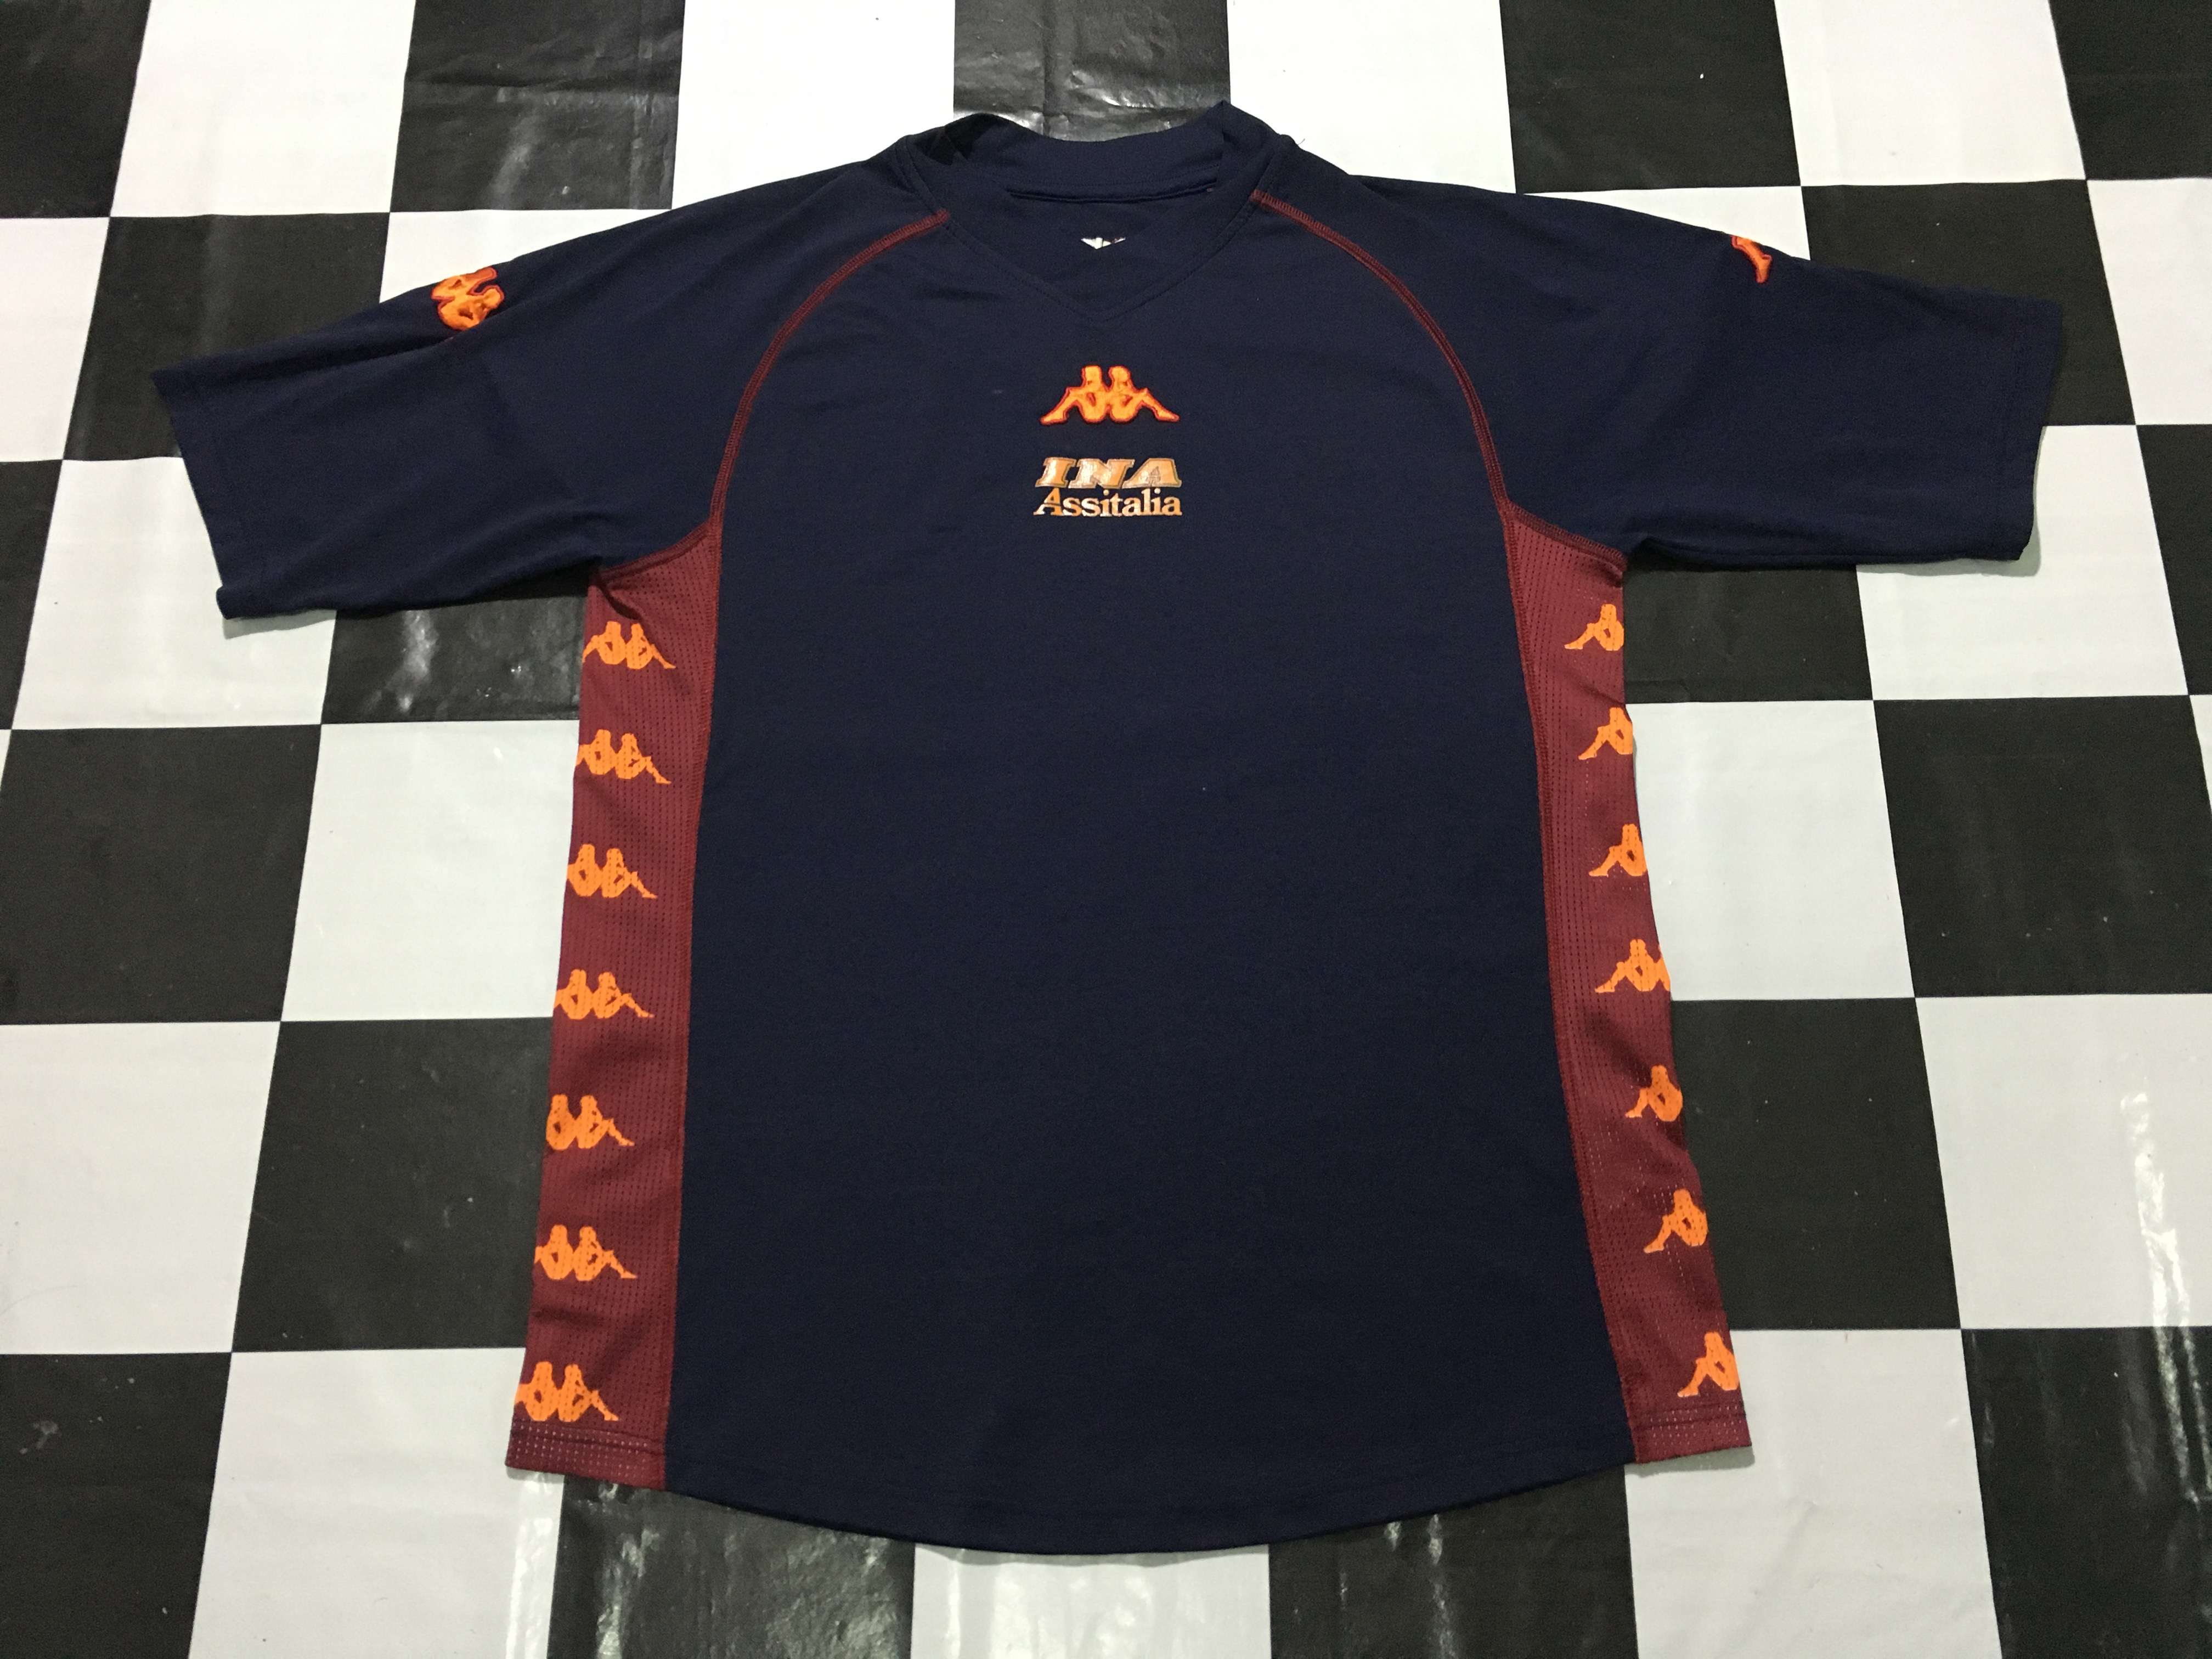 online retailer a6c14 617b8 Vintage Kappa football jersey AS roma big striped logo spell out Good  condition Made in Italy 90s